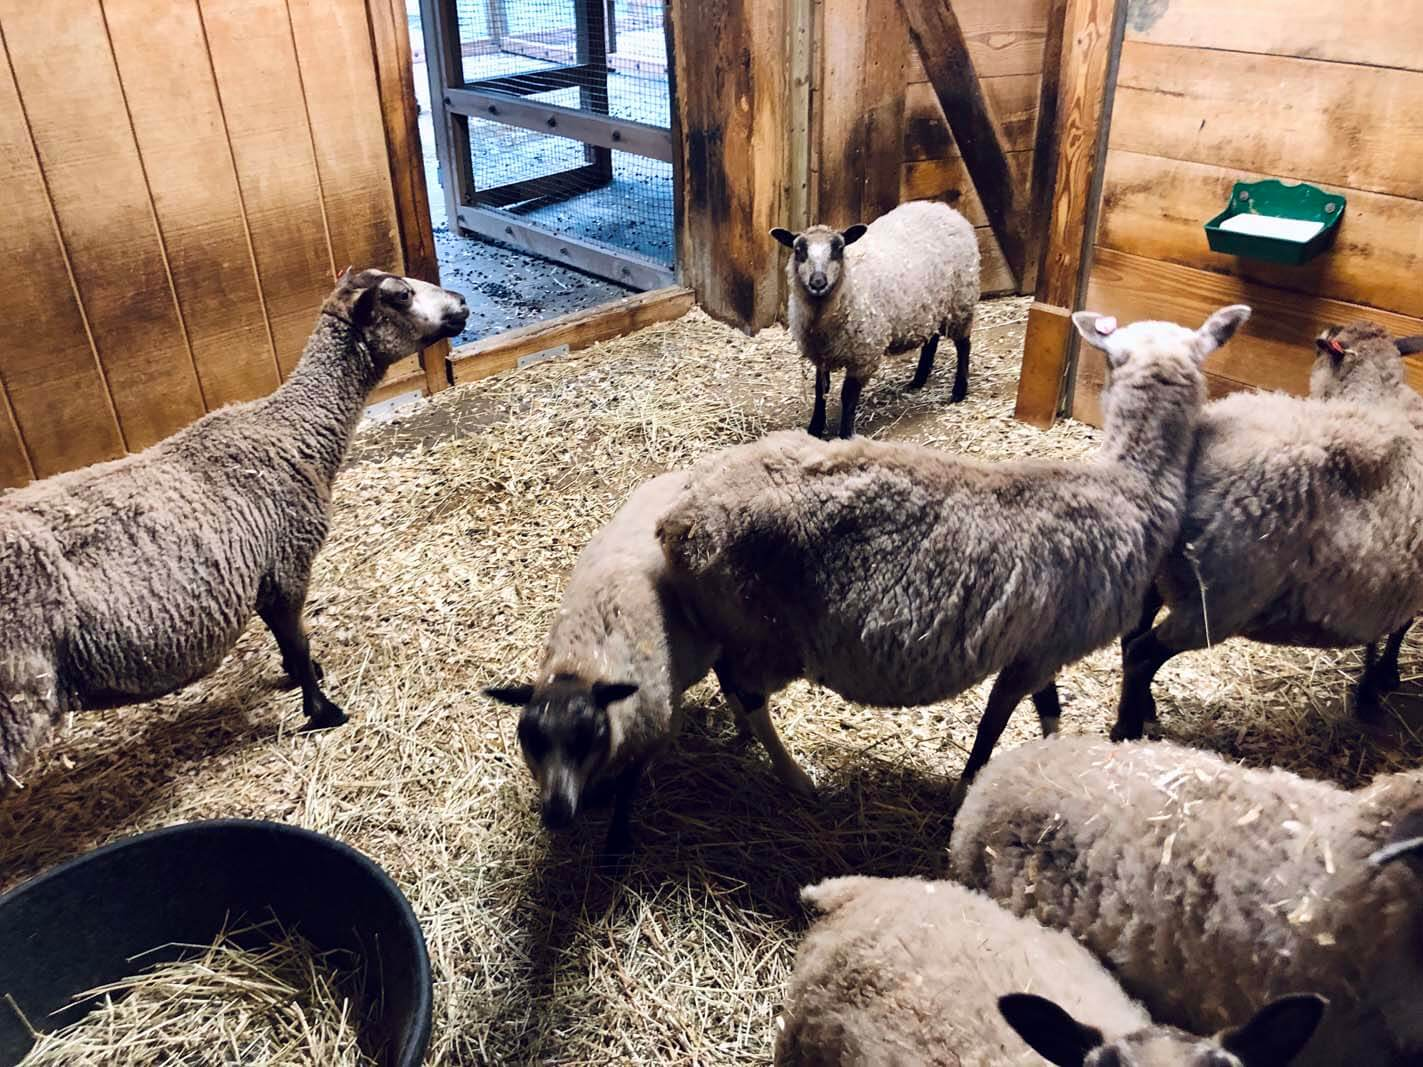 Shetland Sheep at the Prospect Park Zoo in Brooklyn